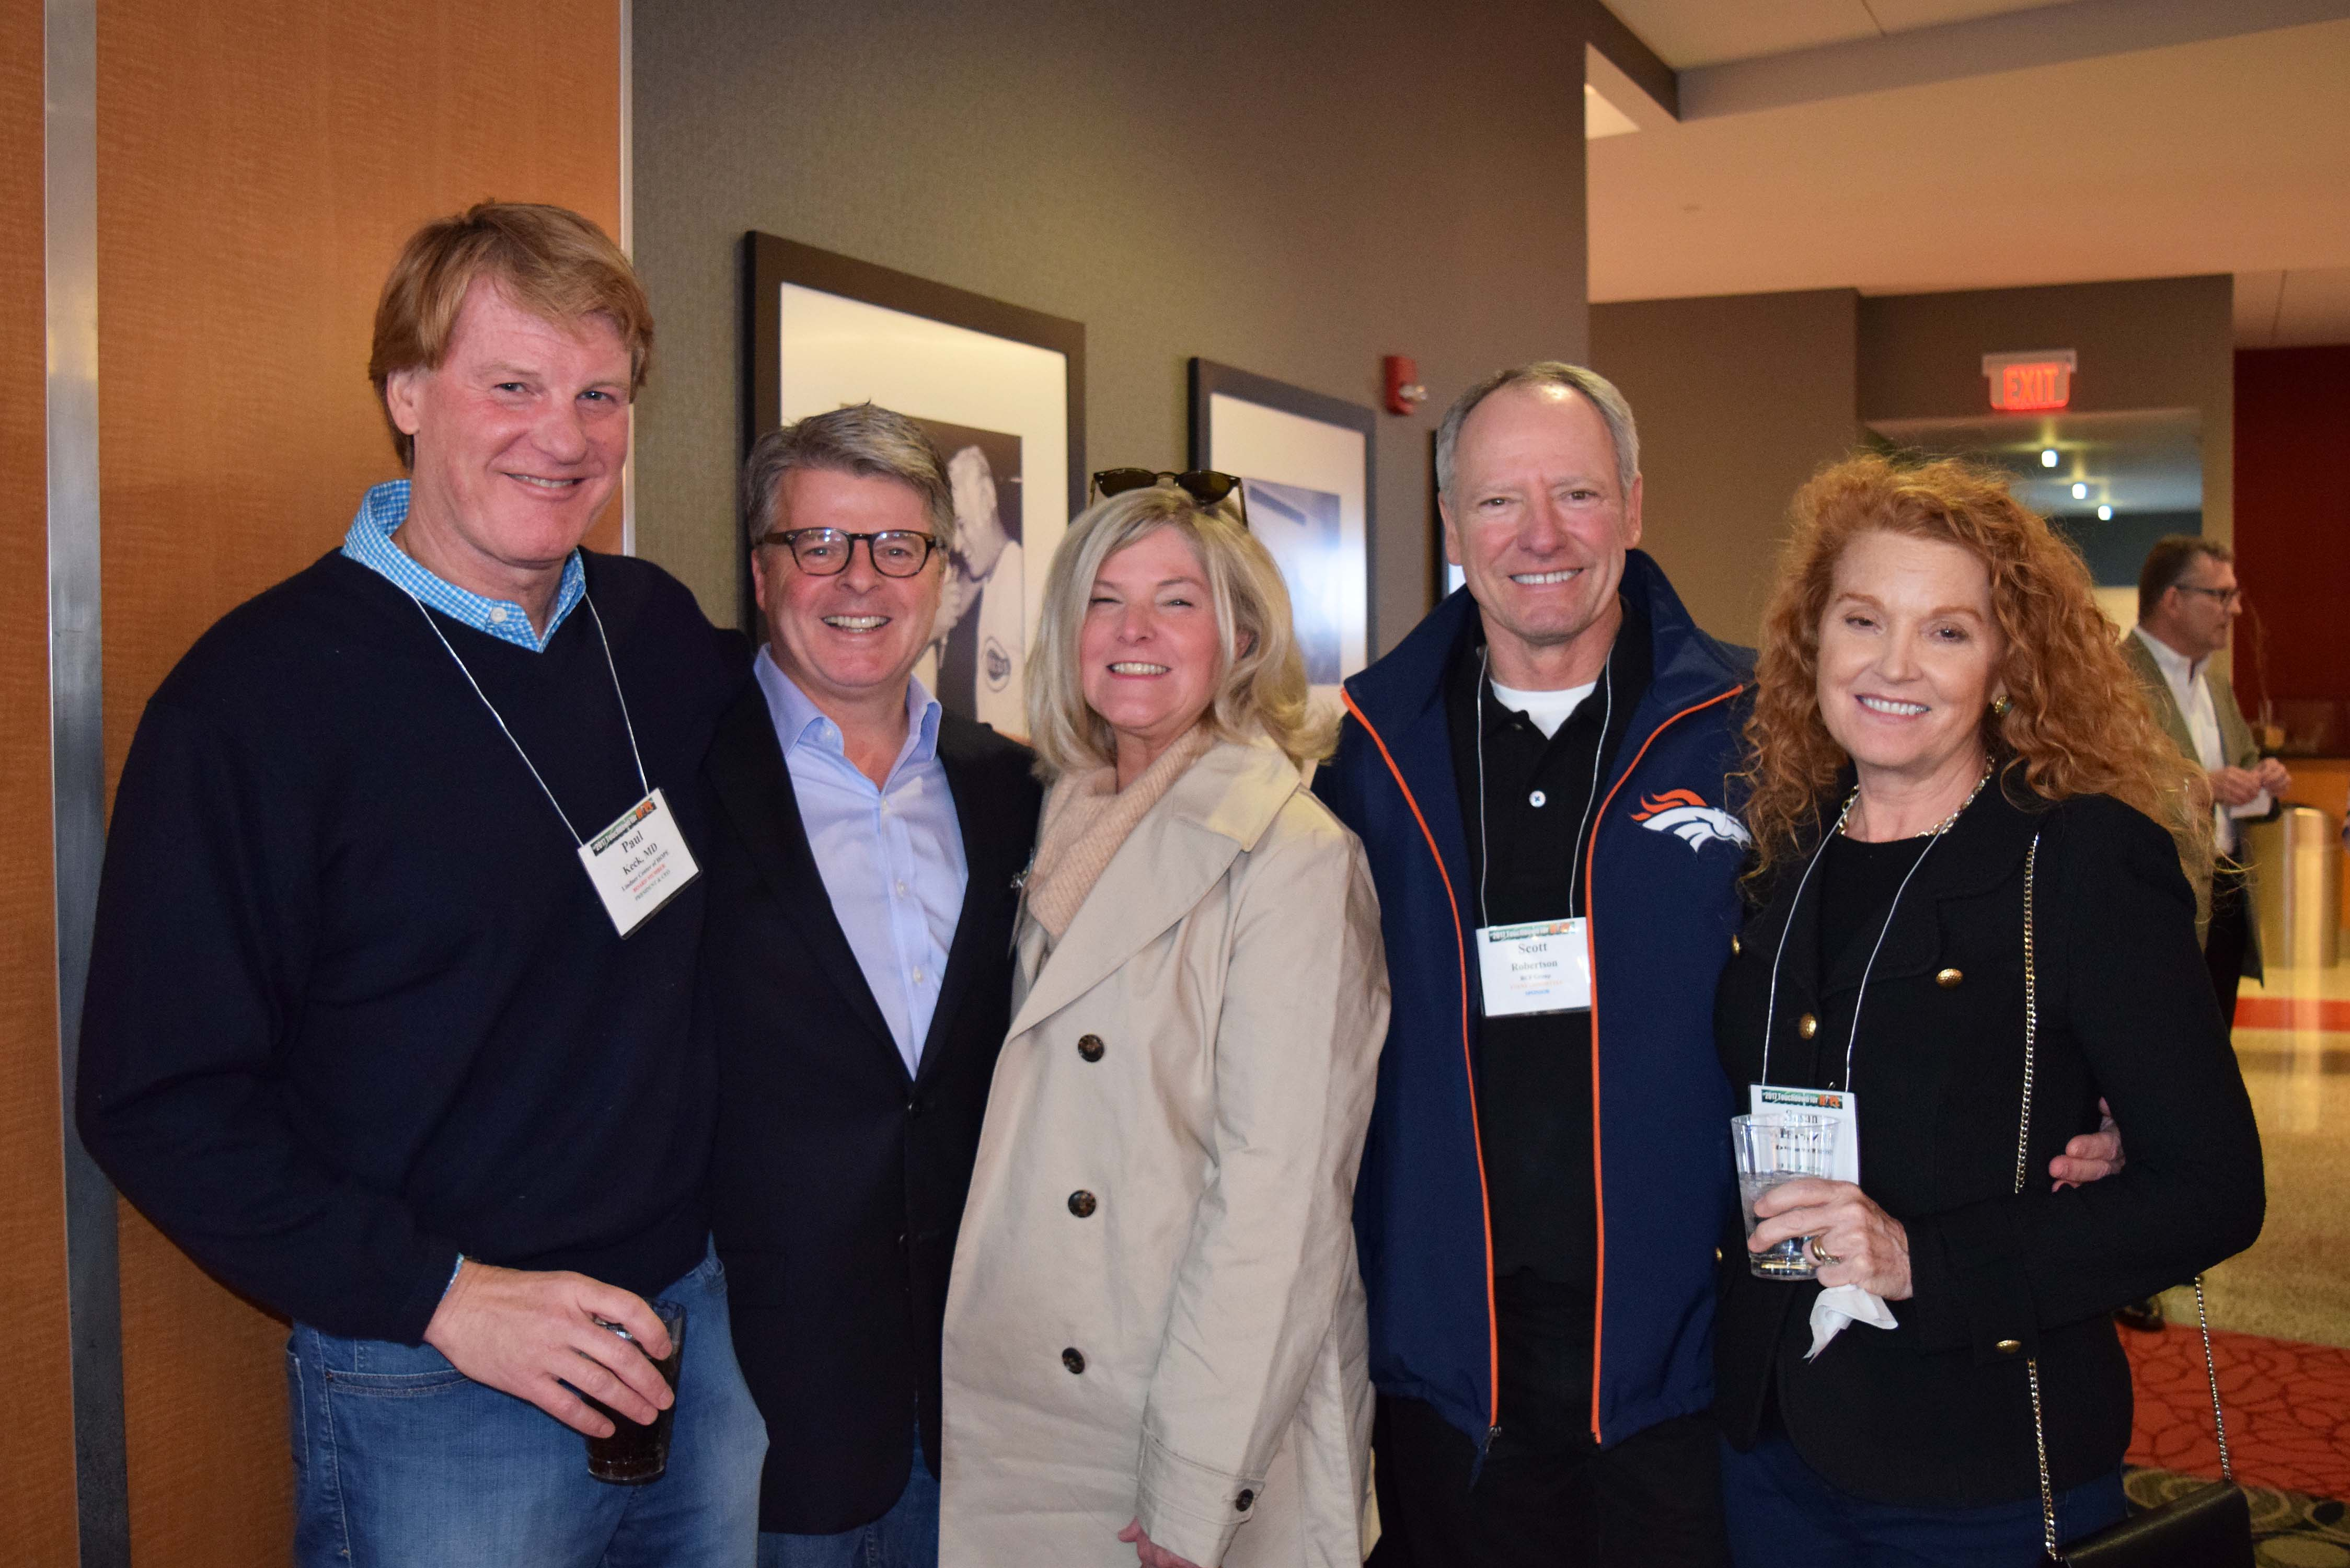 Dr. Paul Keck, Jr., John Ryan, Pat Ryan, Scott Robertson and Dr. Susan McElroy